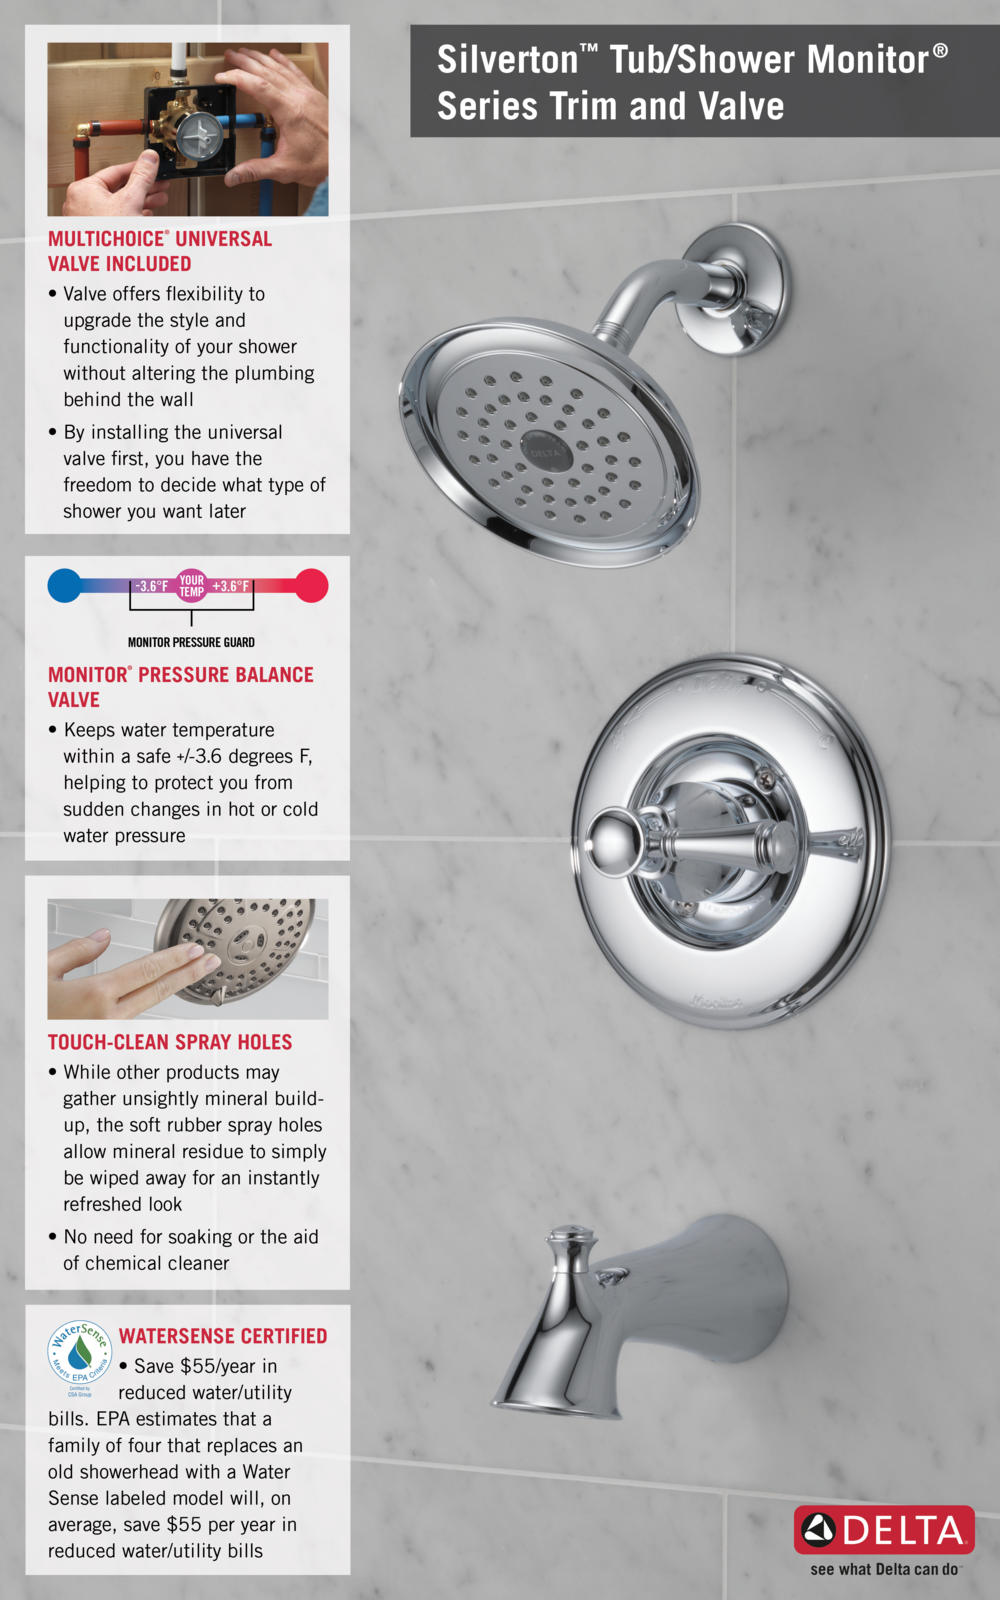 Home Depot Faucet 144713 T14 Shower with Valve Infographic